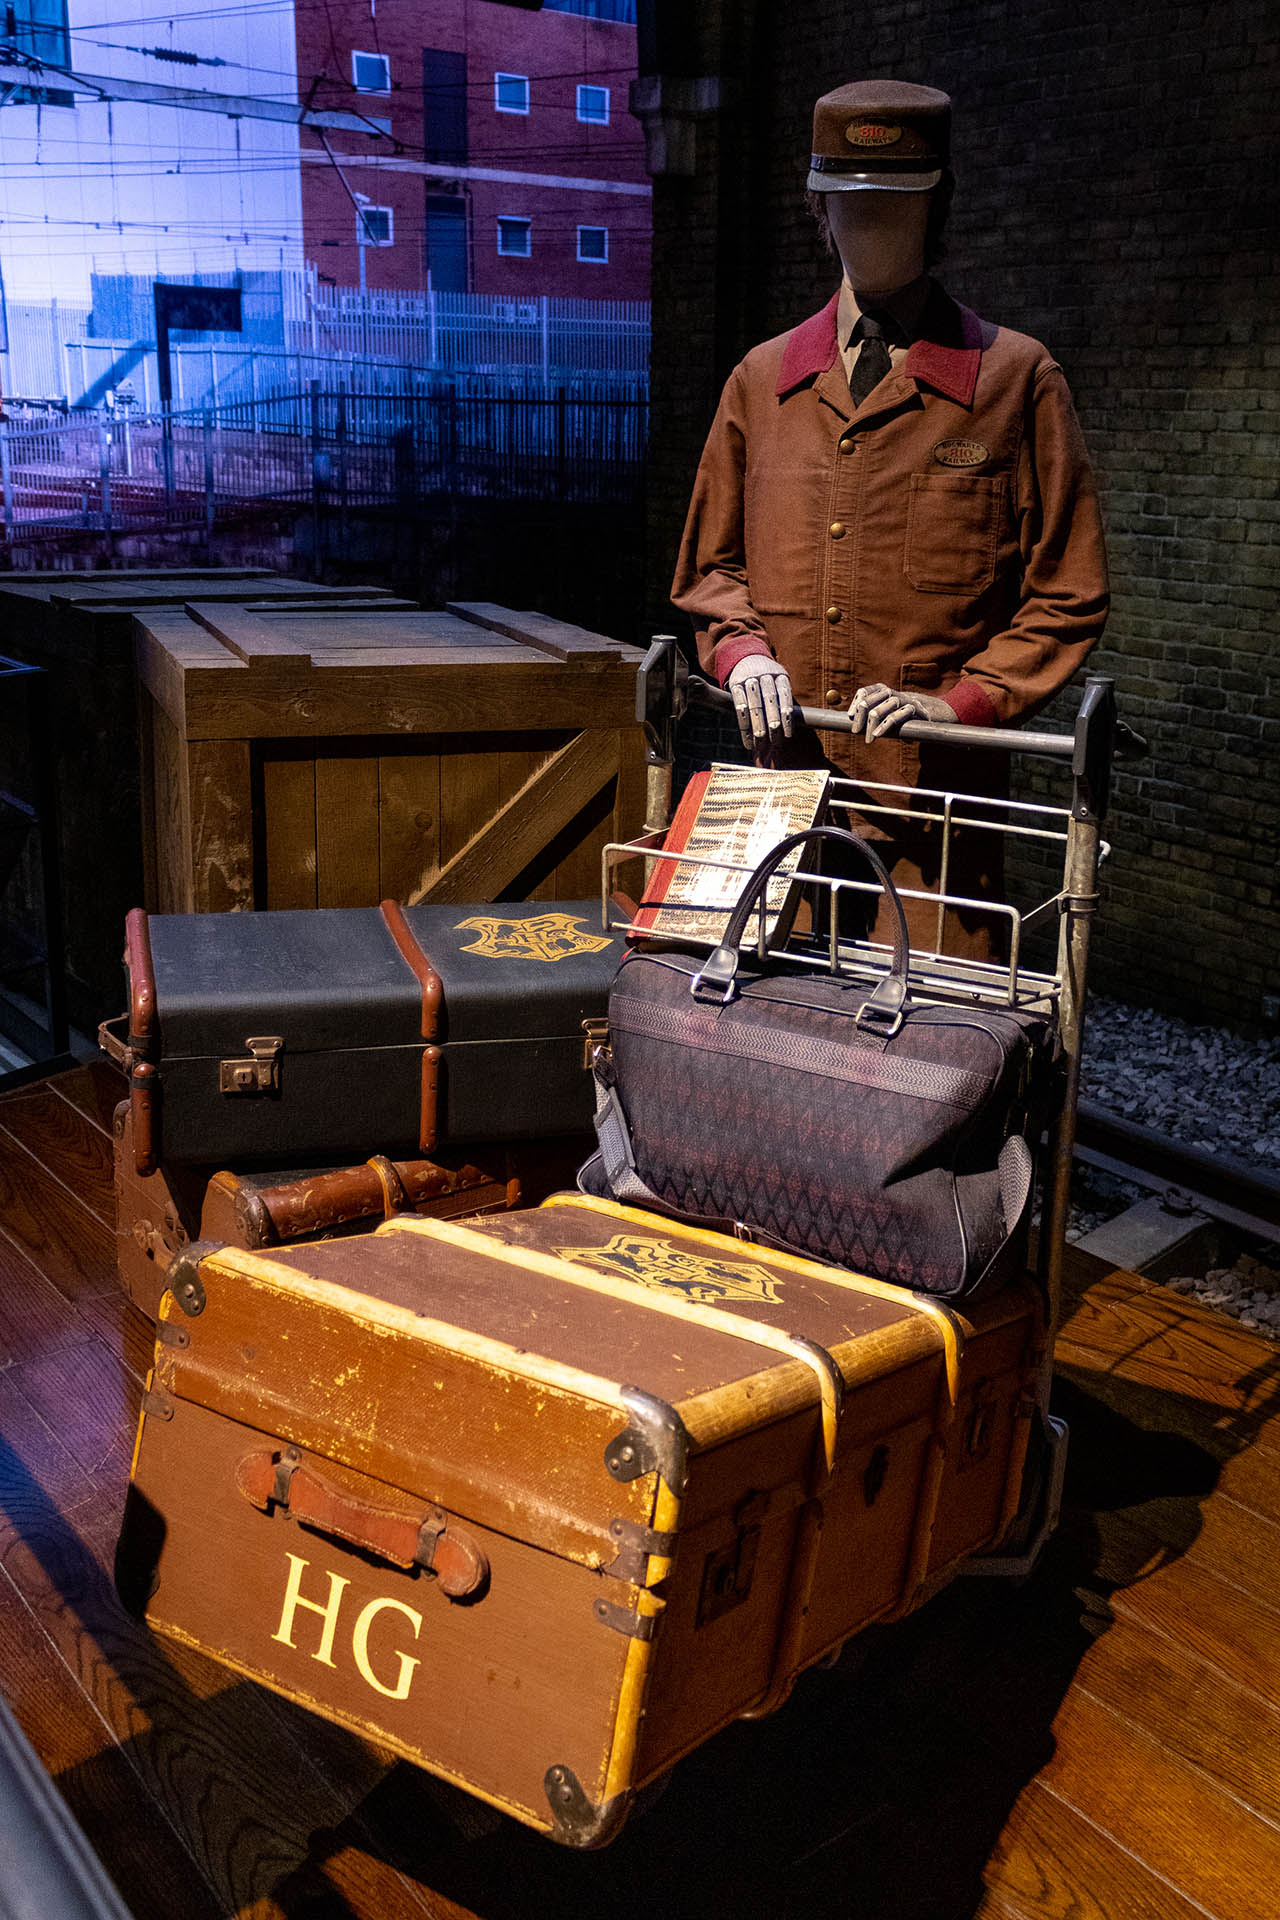 Pop met een trolley met hutkoffers in de Harry Potter Studio Tour